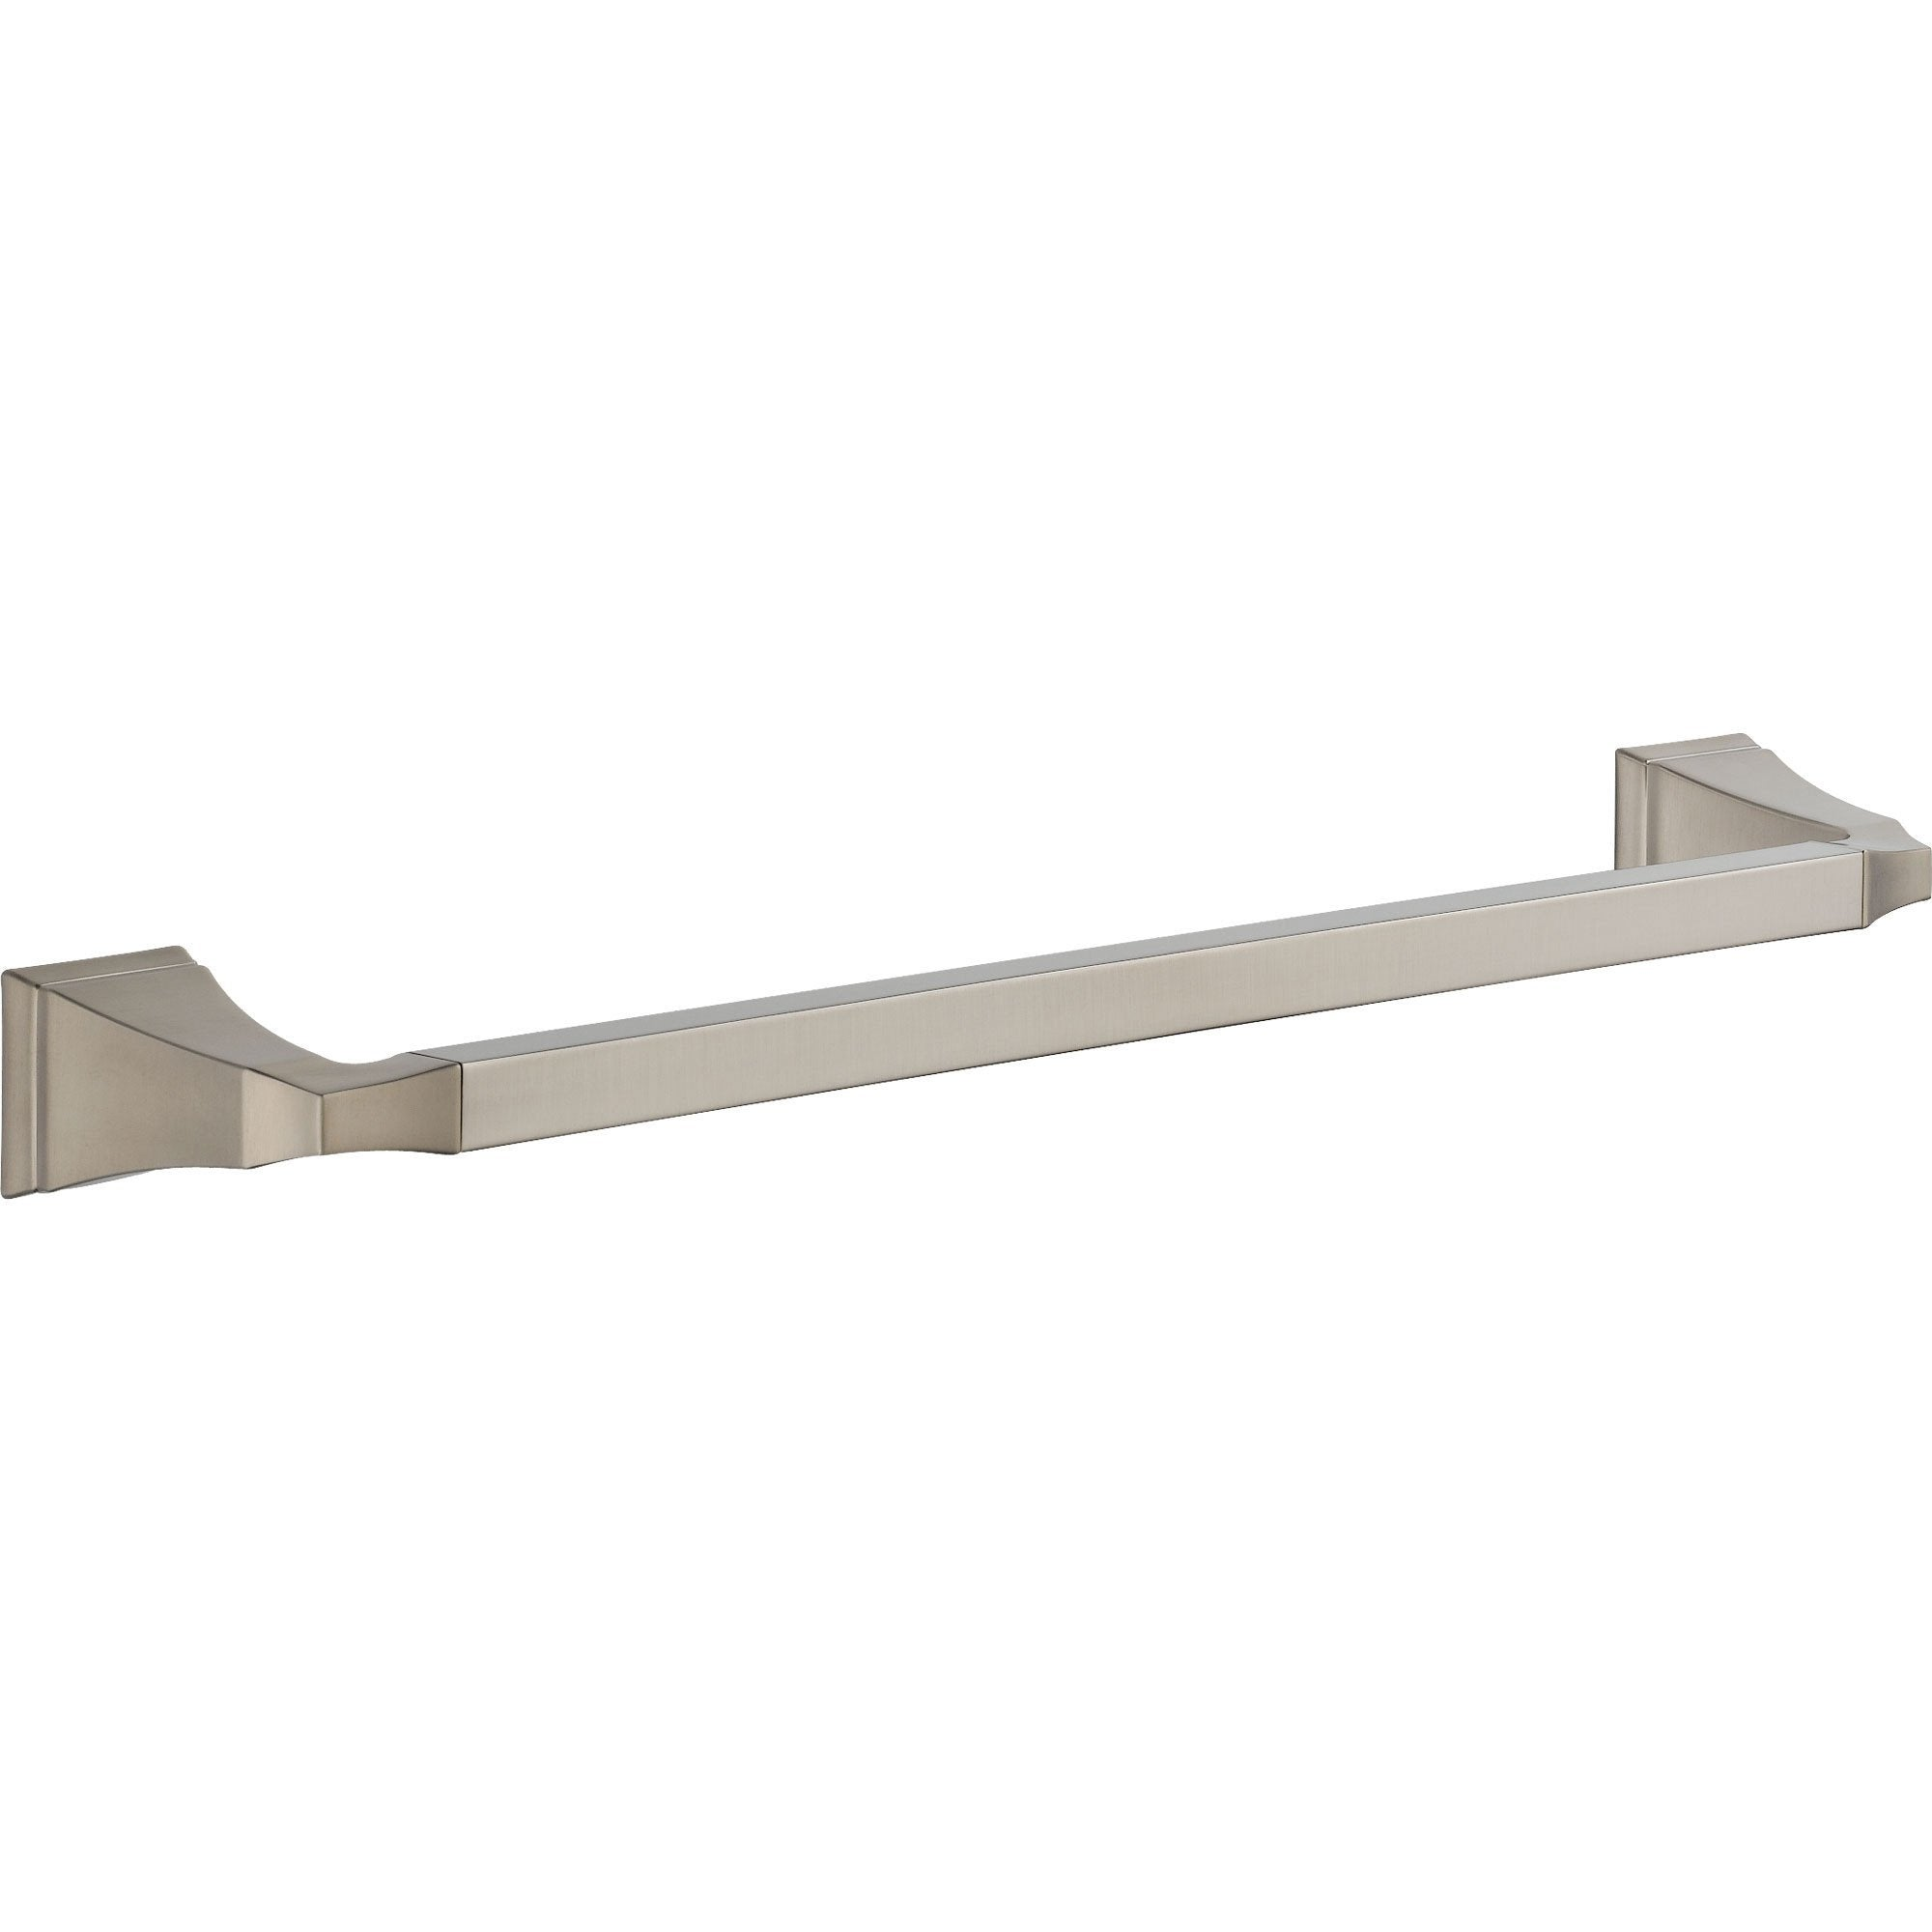 Delta Dryden Stainless Steel Finish 18 inch Modern Single Towel Bar 454993